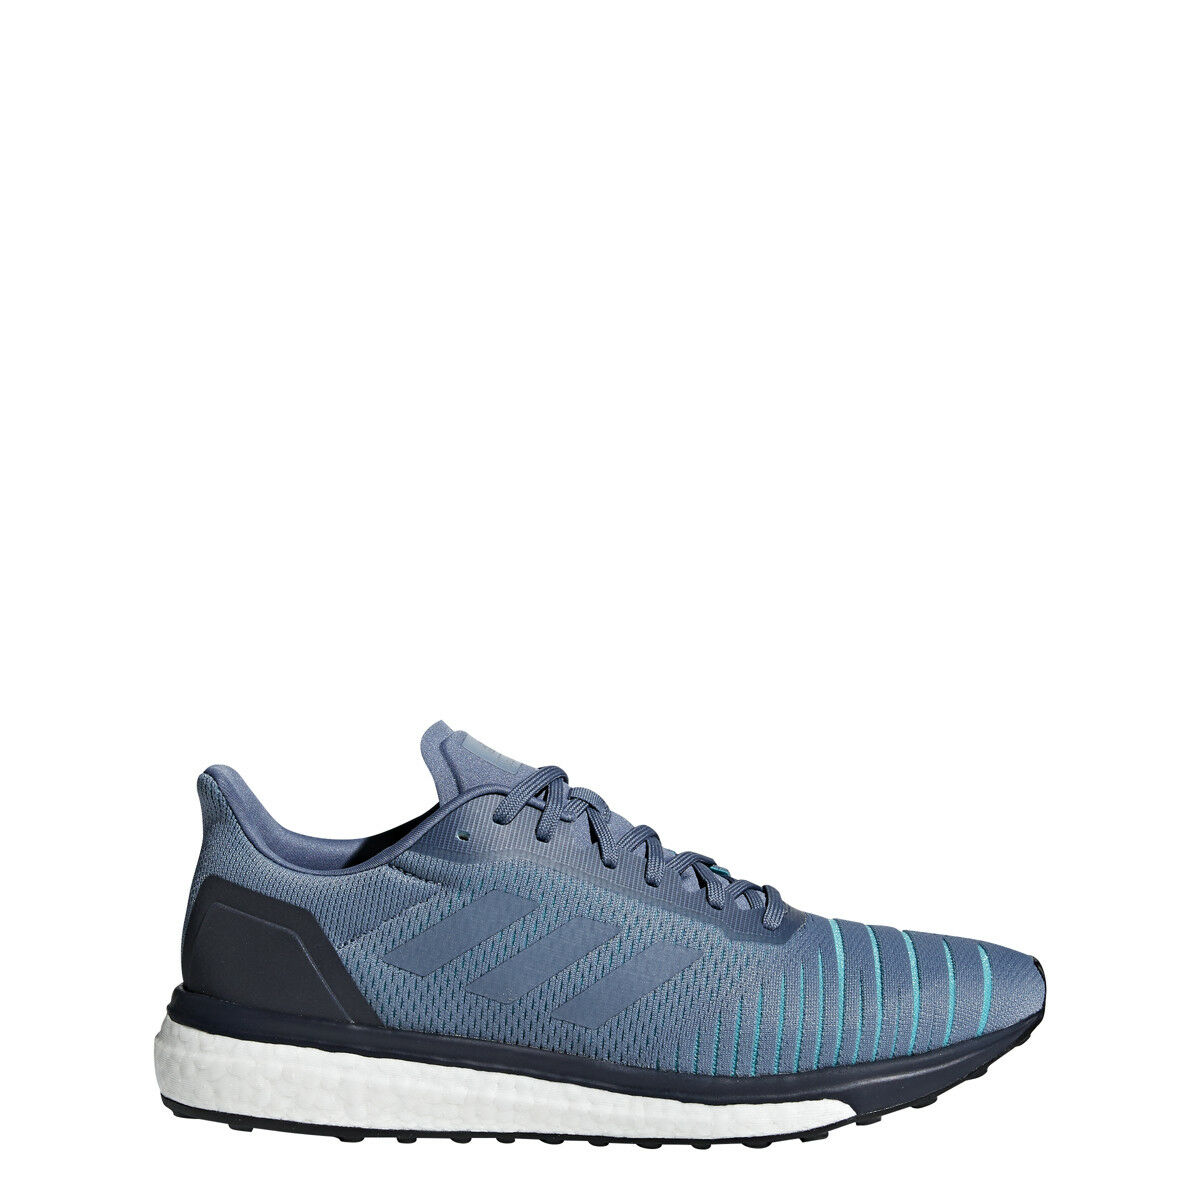 c9f9a871879bf Adidas Solar Drive Men s BOOST Running shoes AC8133